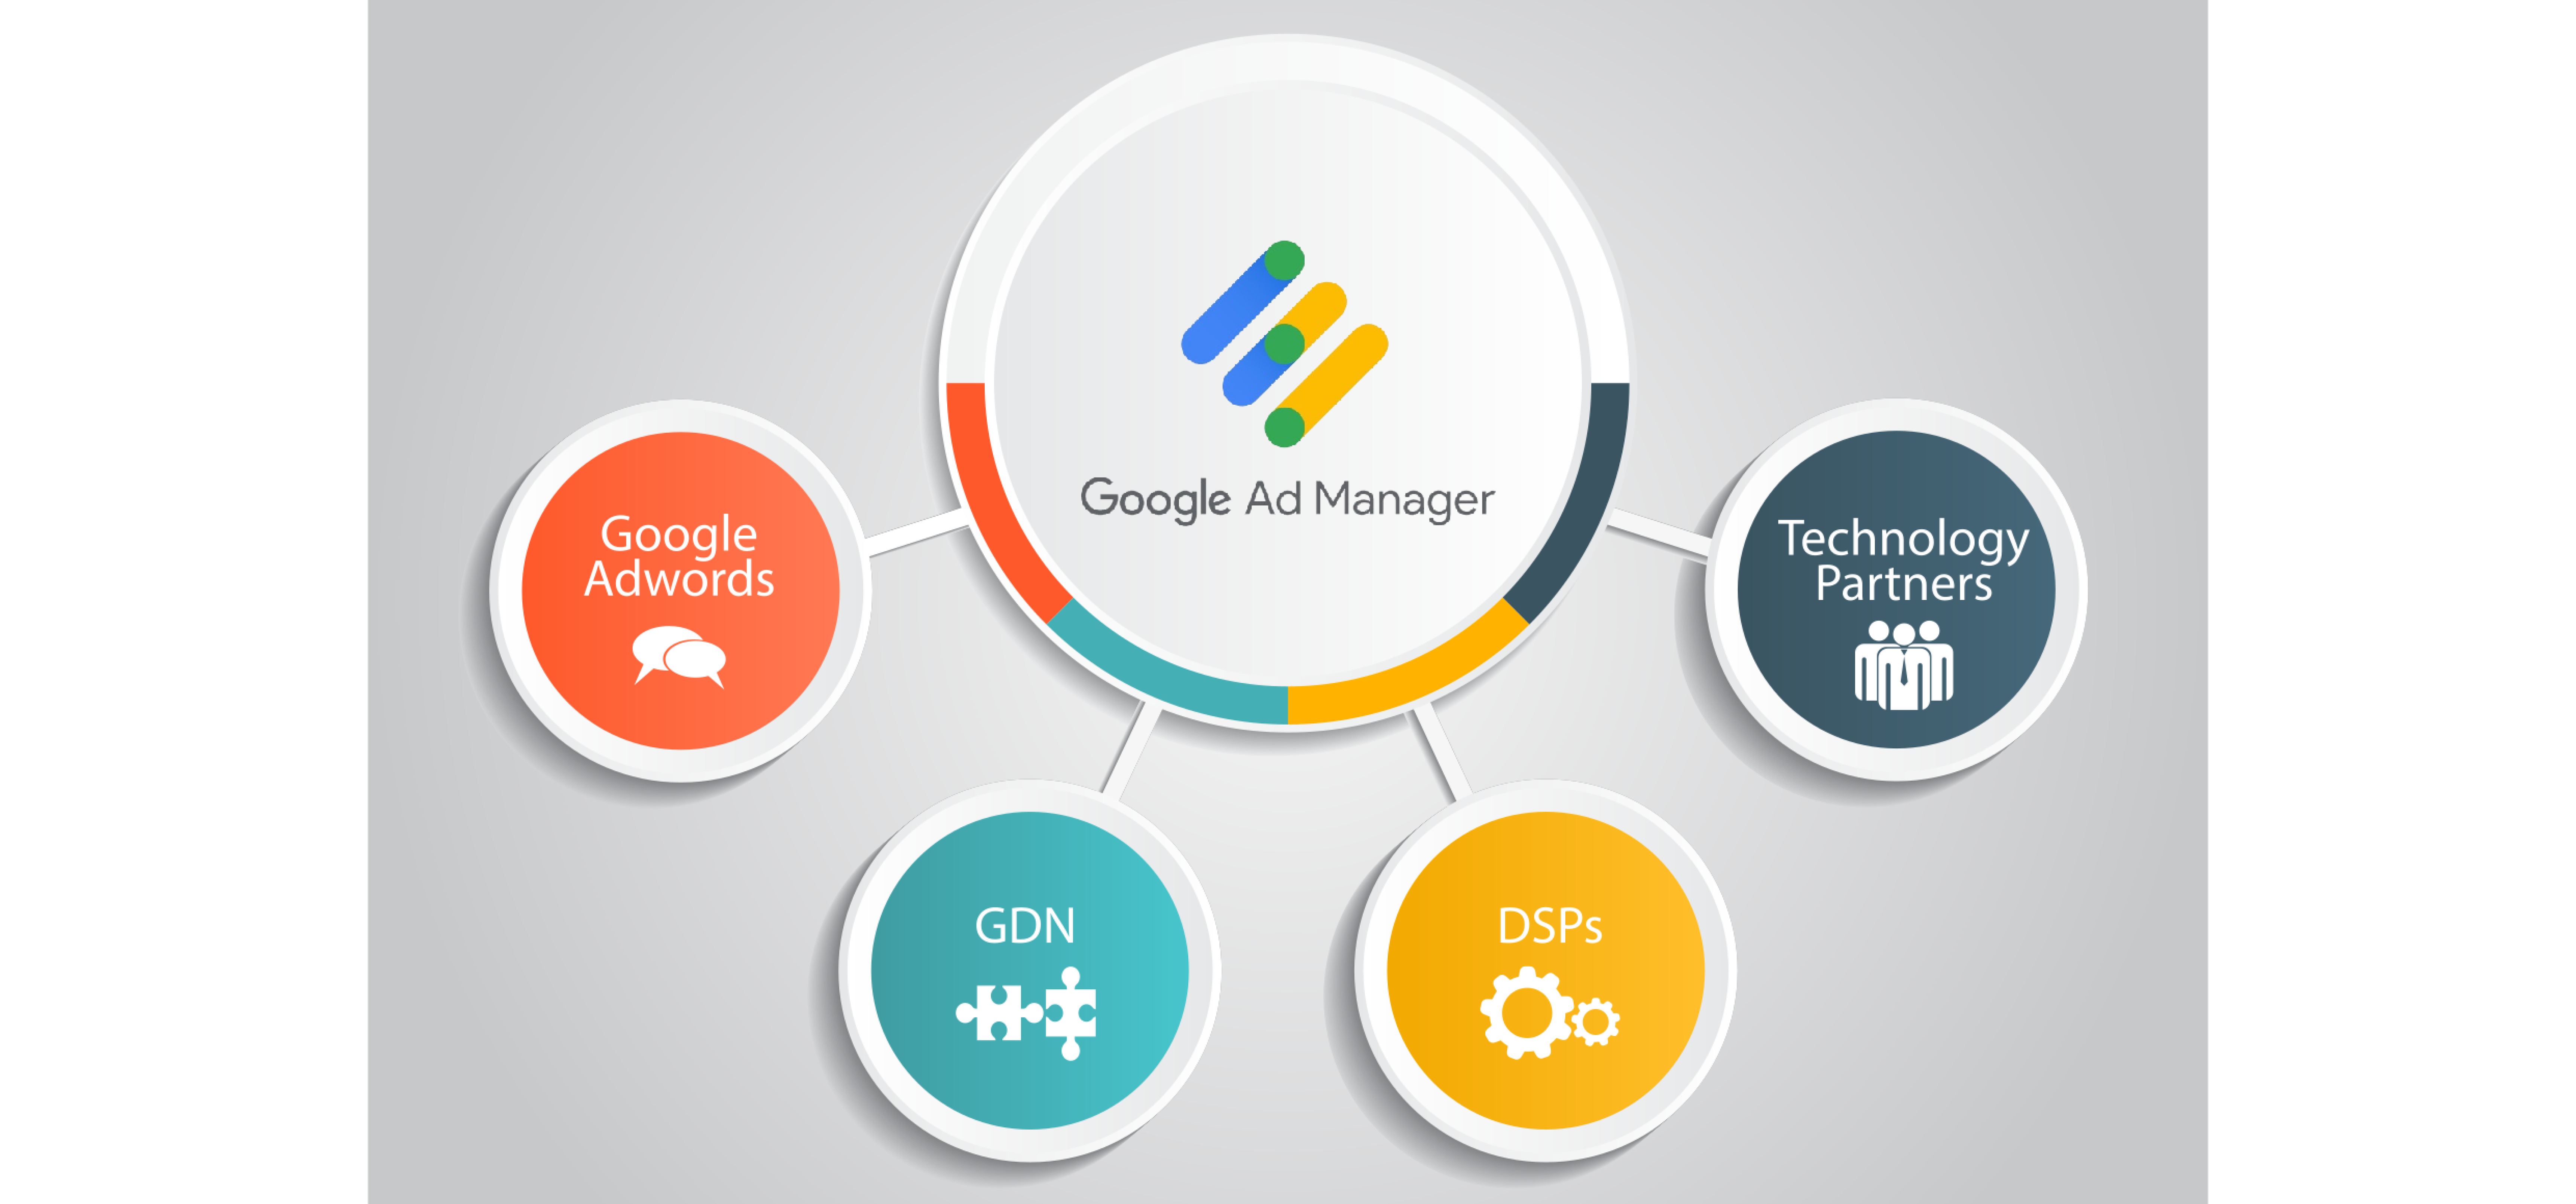 Google ad manager diagram